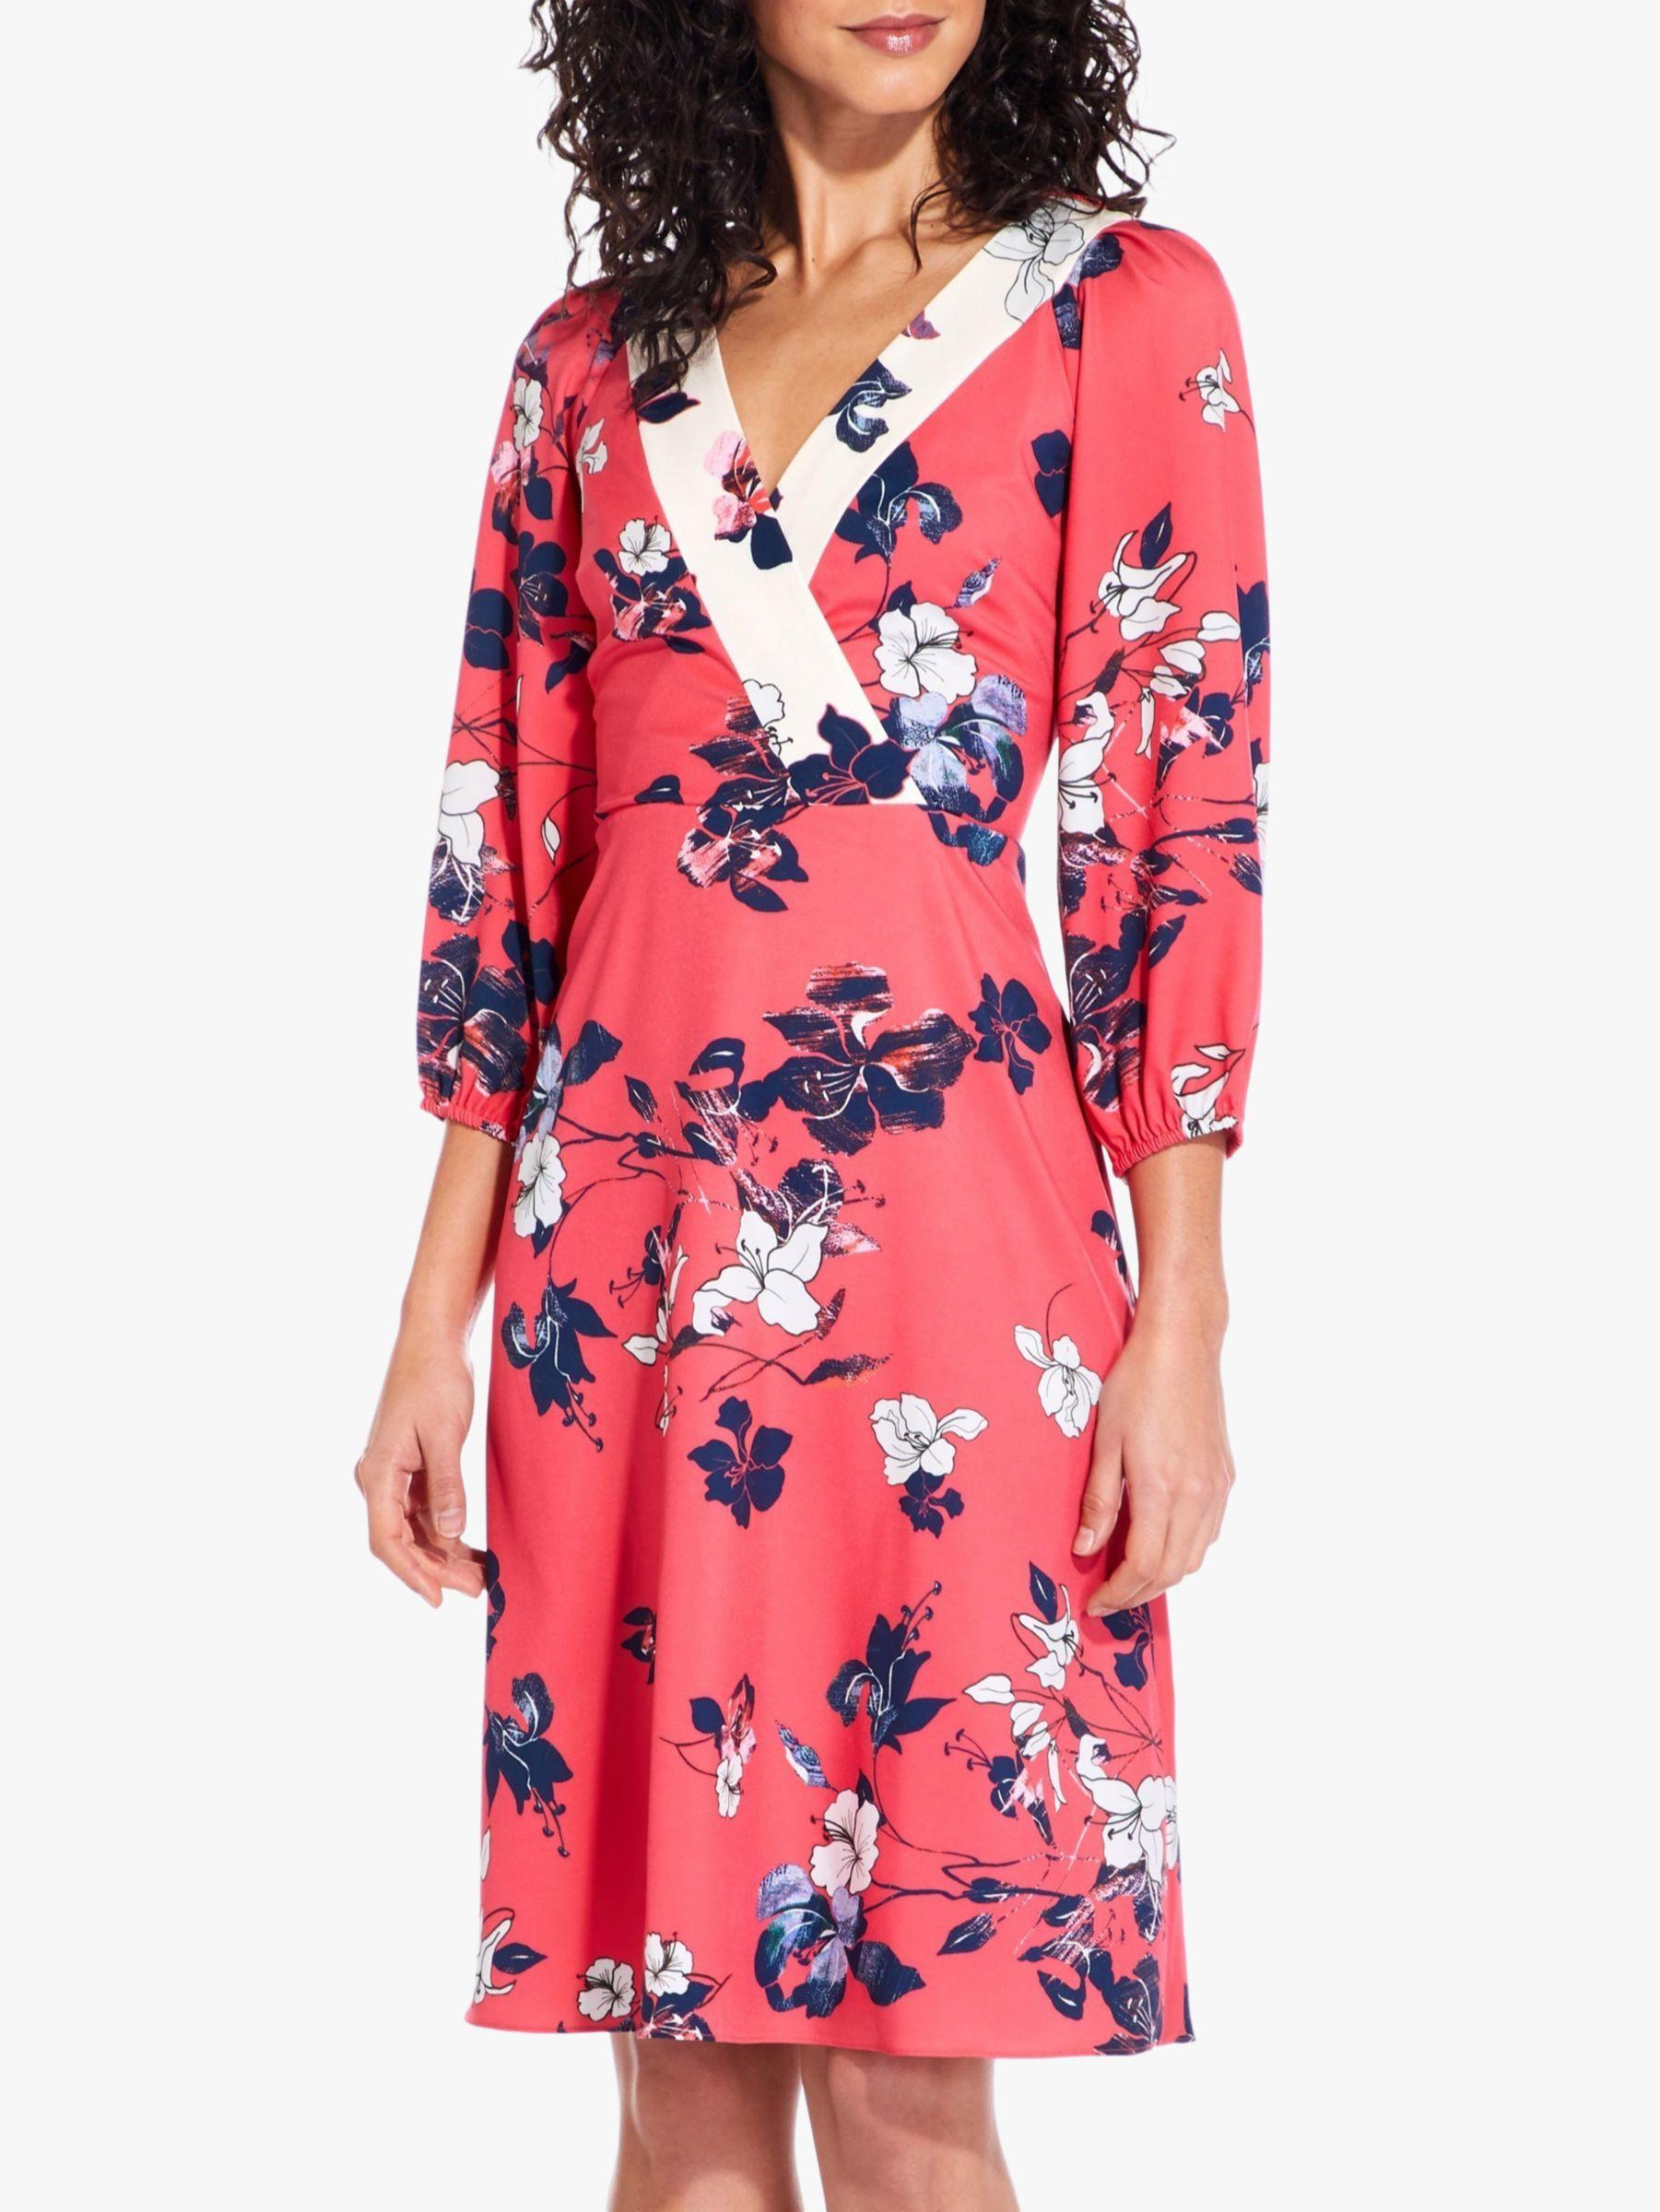 f195af424f1 Adrianna Papell Floral Print Surplice V-neck A-line Dress in Red - Lyst